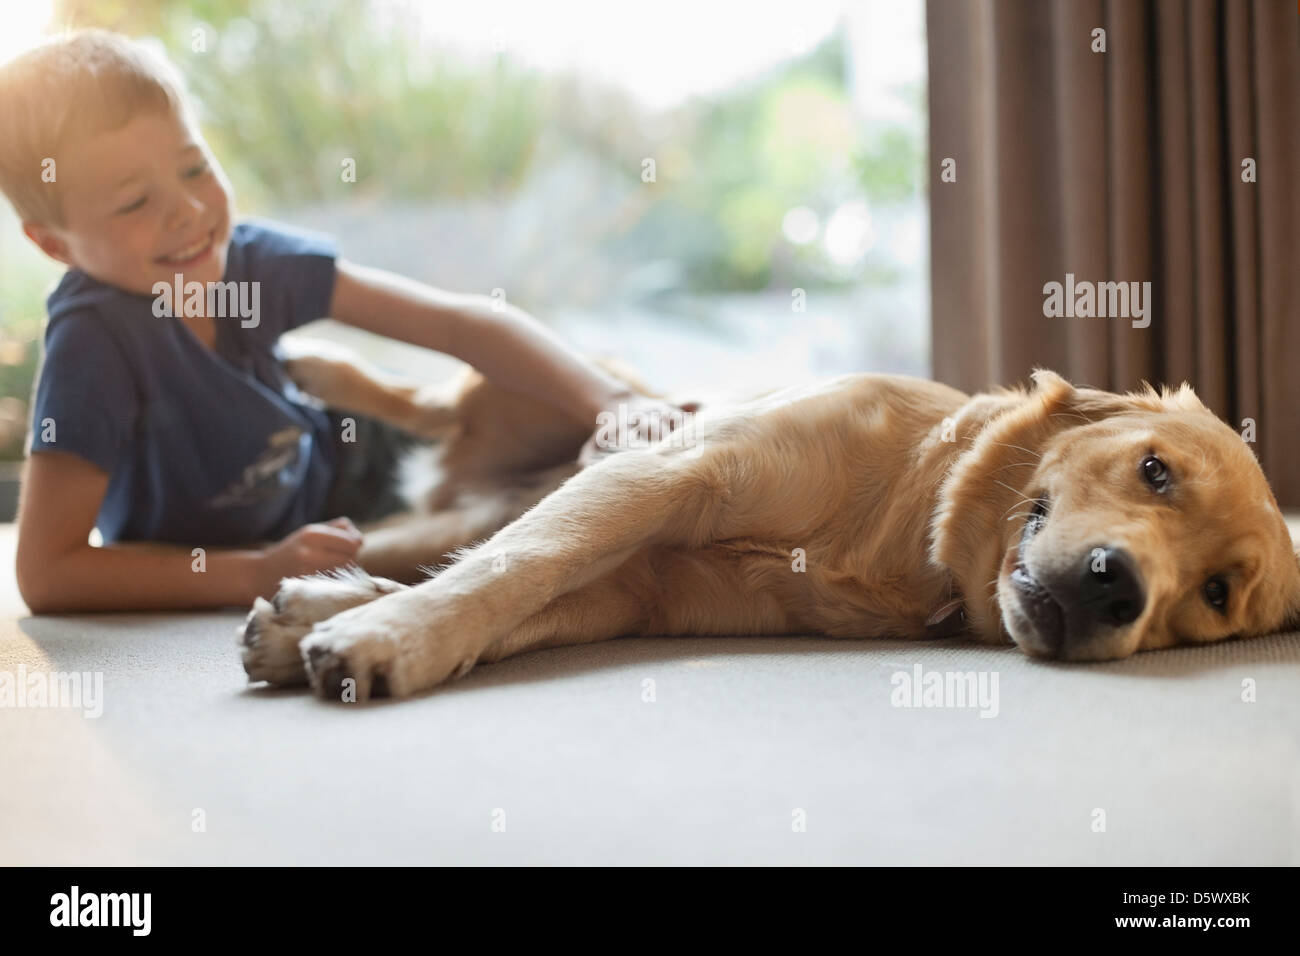 Smiling boy petting dog in living room - Stock Image